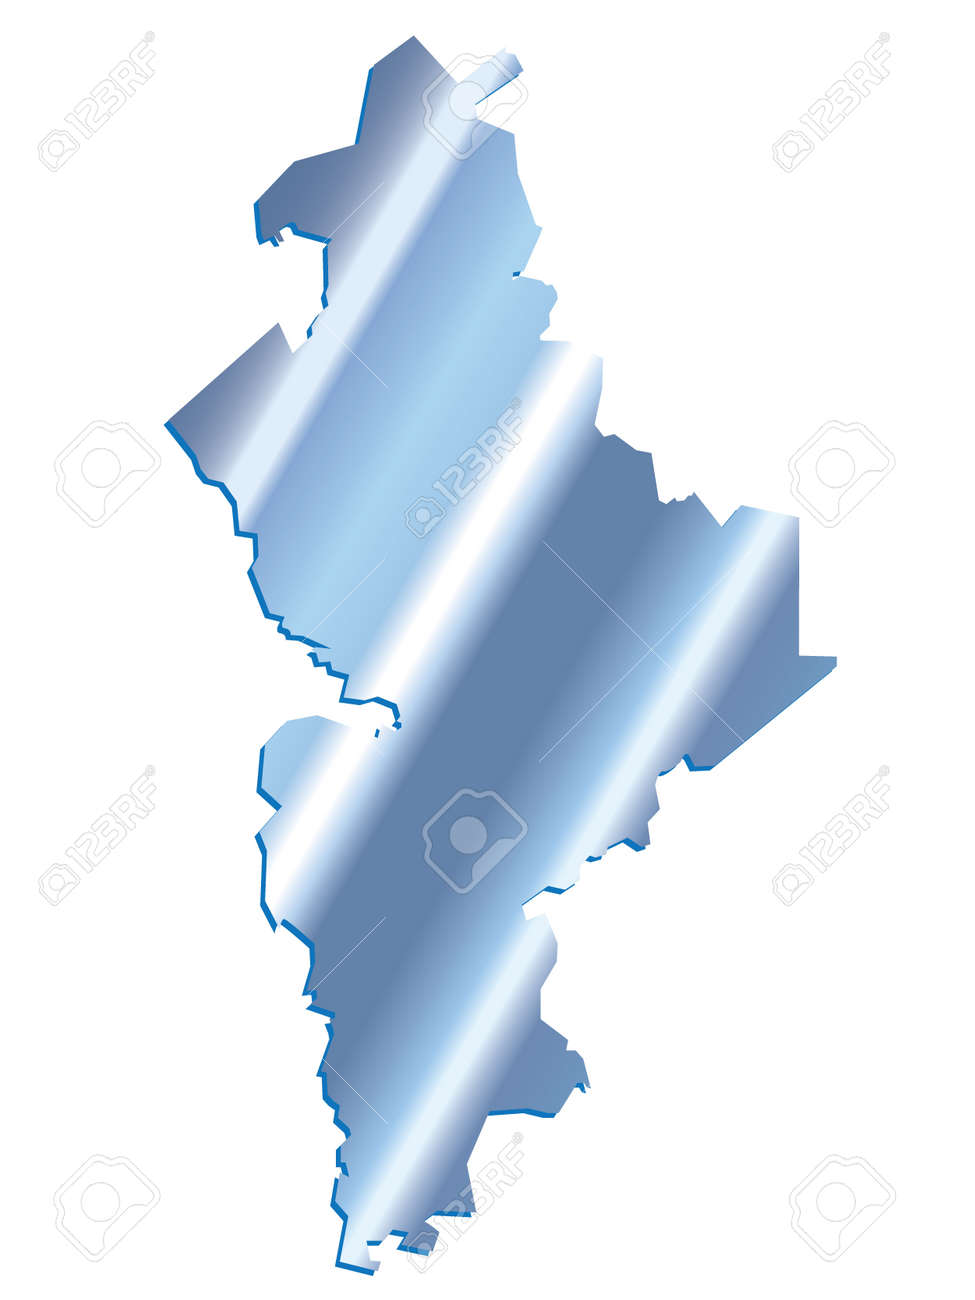 State Map Mexico.3d Nuevo Leon Mexico State Map Iridium Vector Royalty Free Cliparts